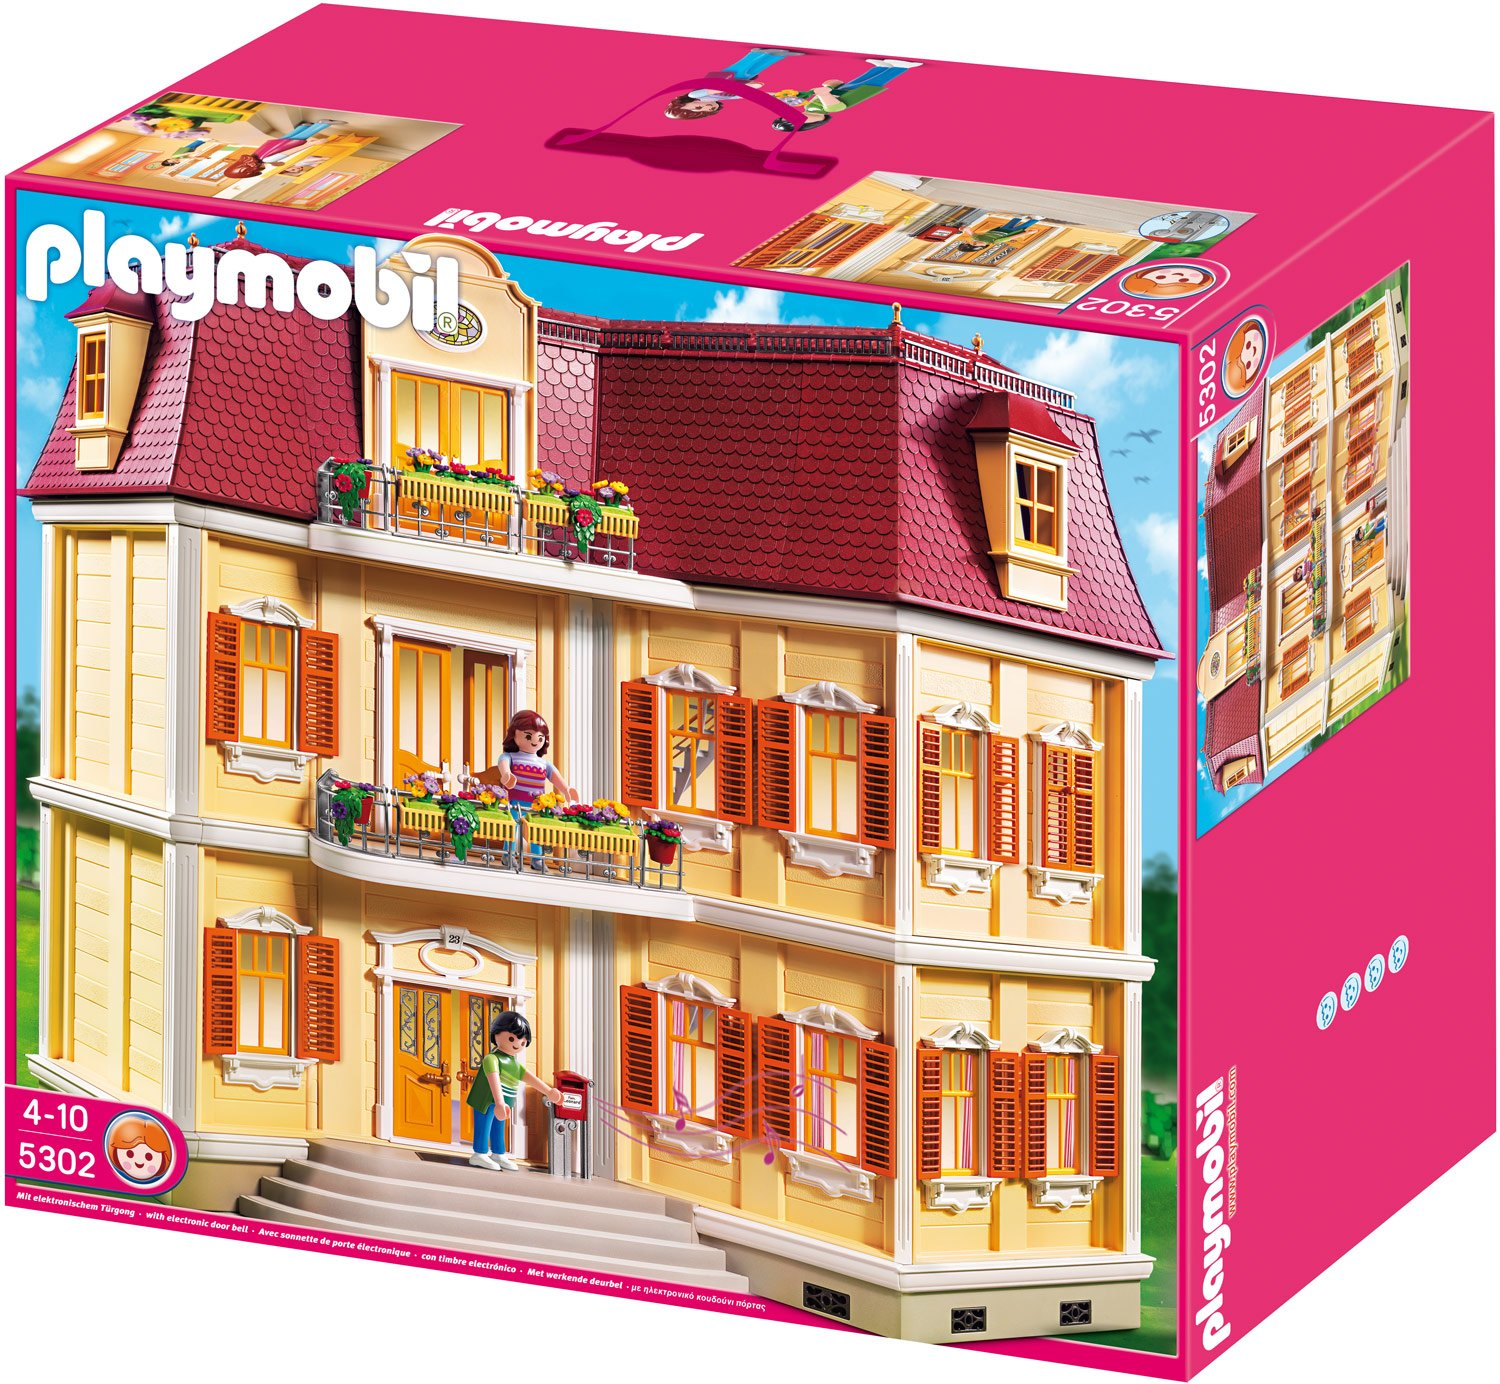 playmobil mein gro es puppenhaus 5302 preisvergleich. Black Bedroom Furniture Sets. Home Design Ideas